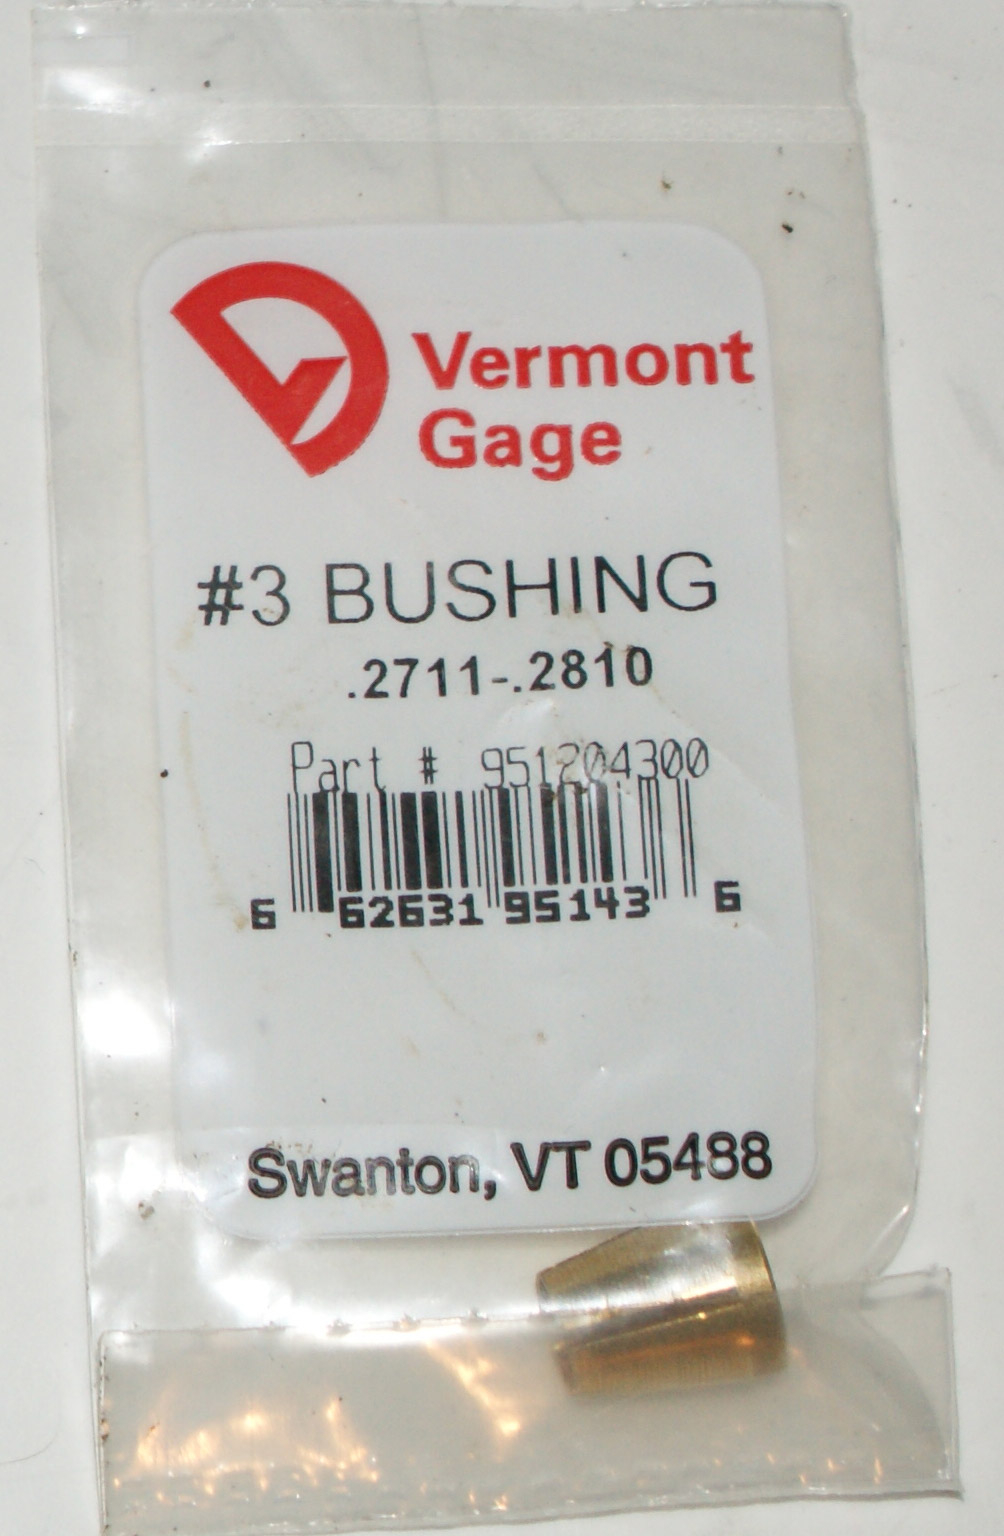 "Vermont Gage .2711-.2810"" #3 Bushing / Collet Pin"